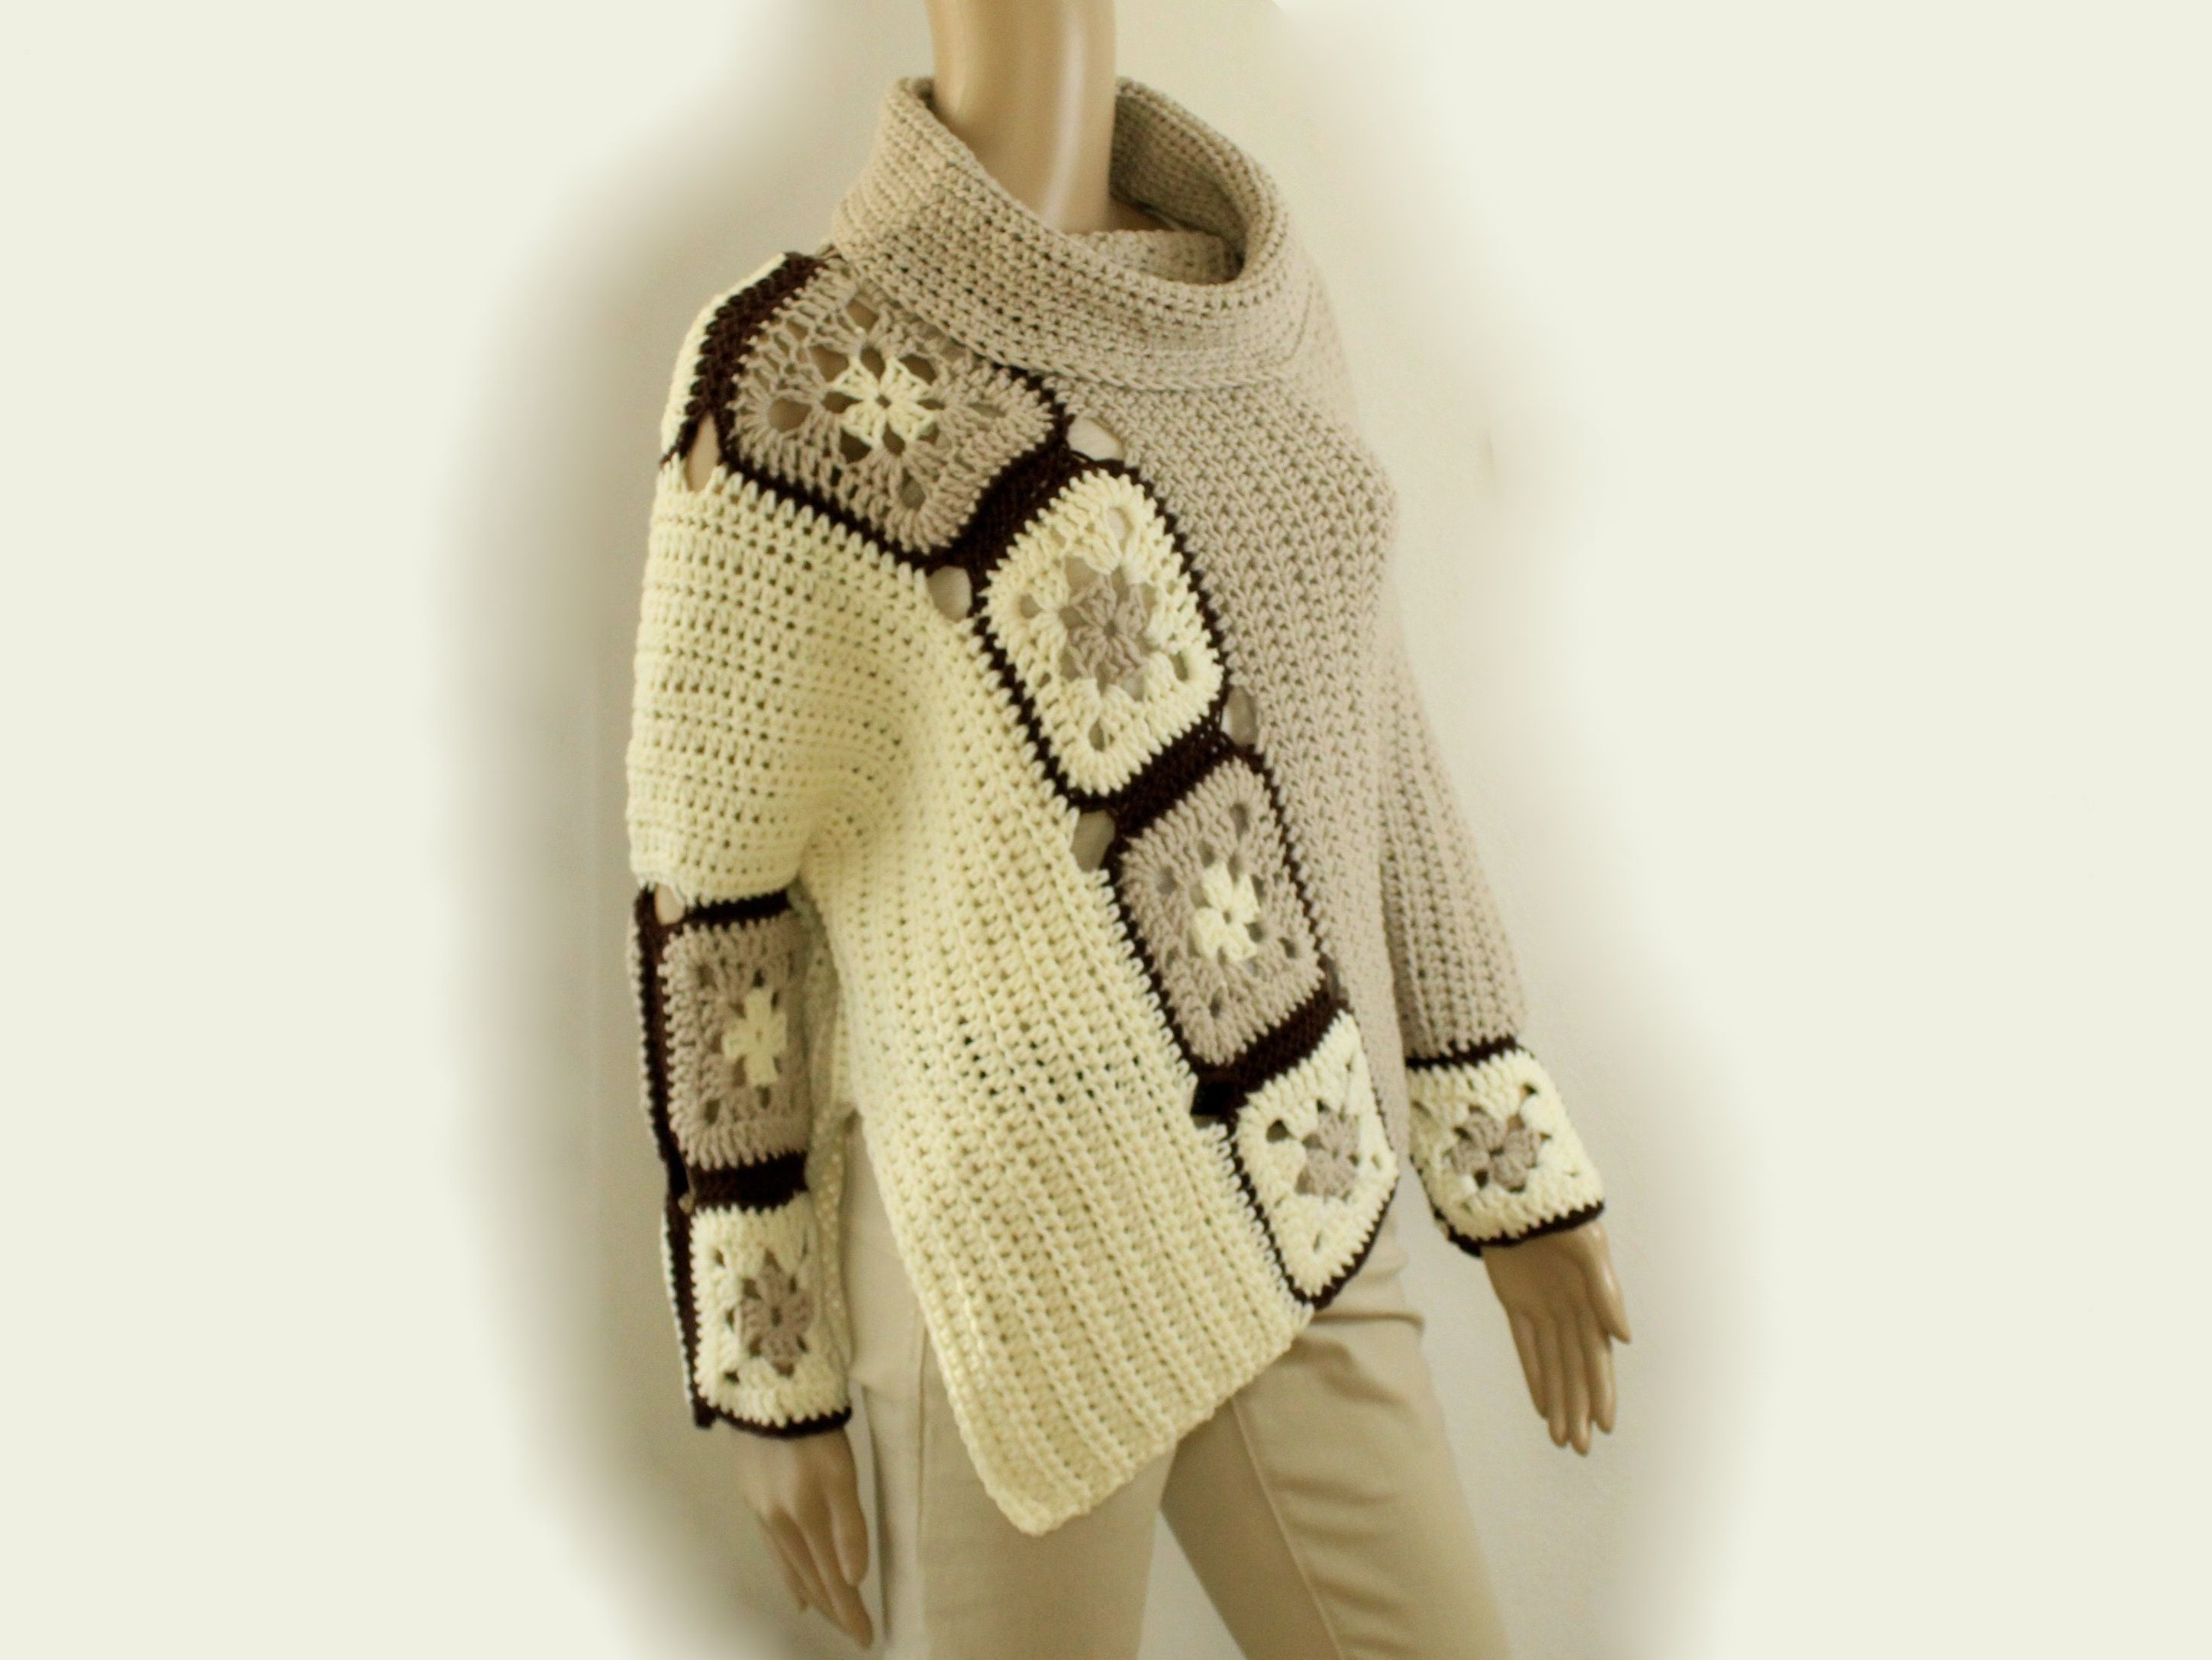 Poncho häkeln CrazyPatterns nk-chrohet | https://www.crazypatterns ...